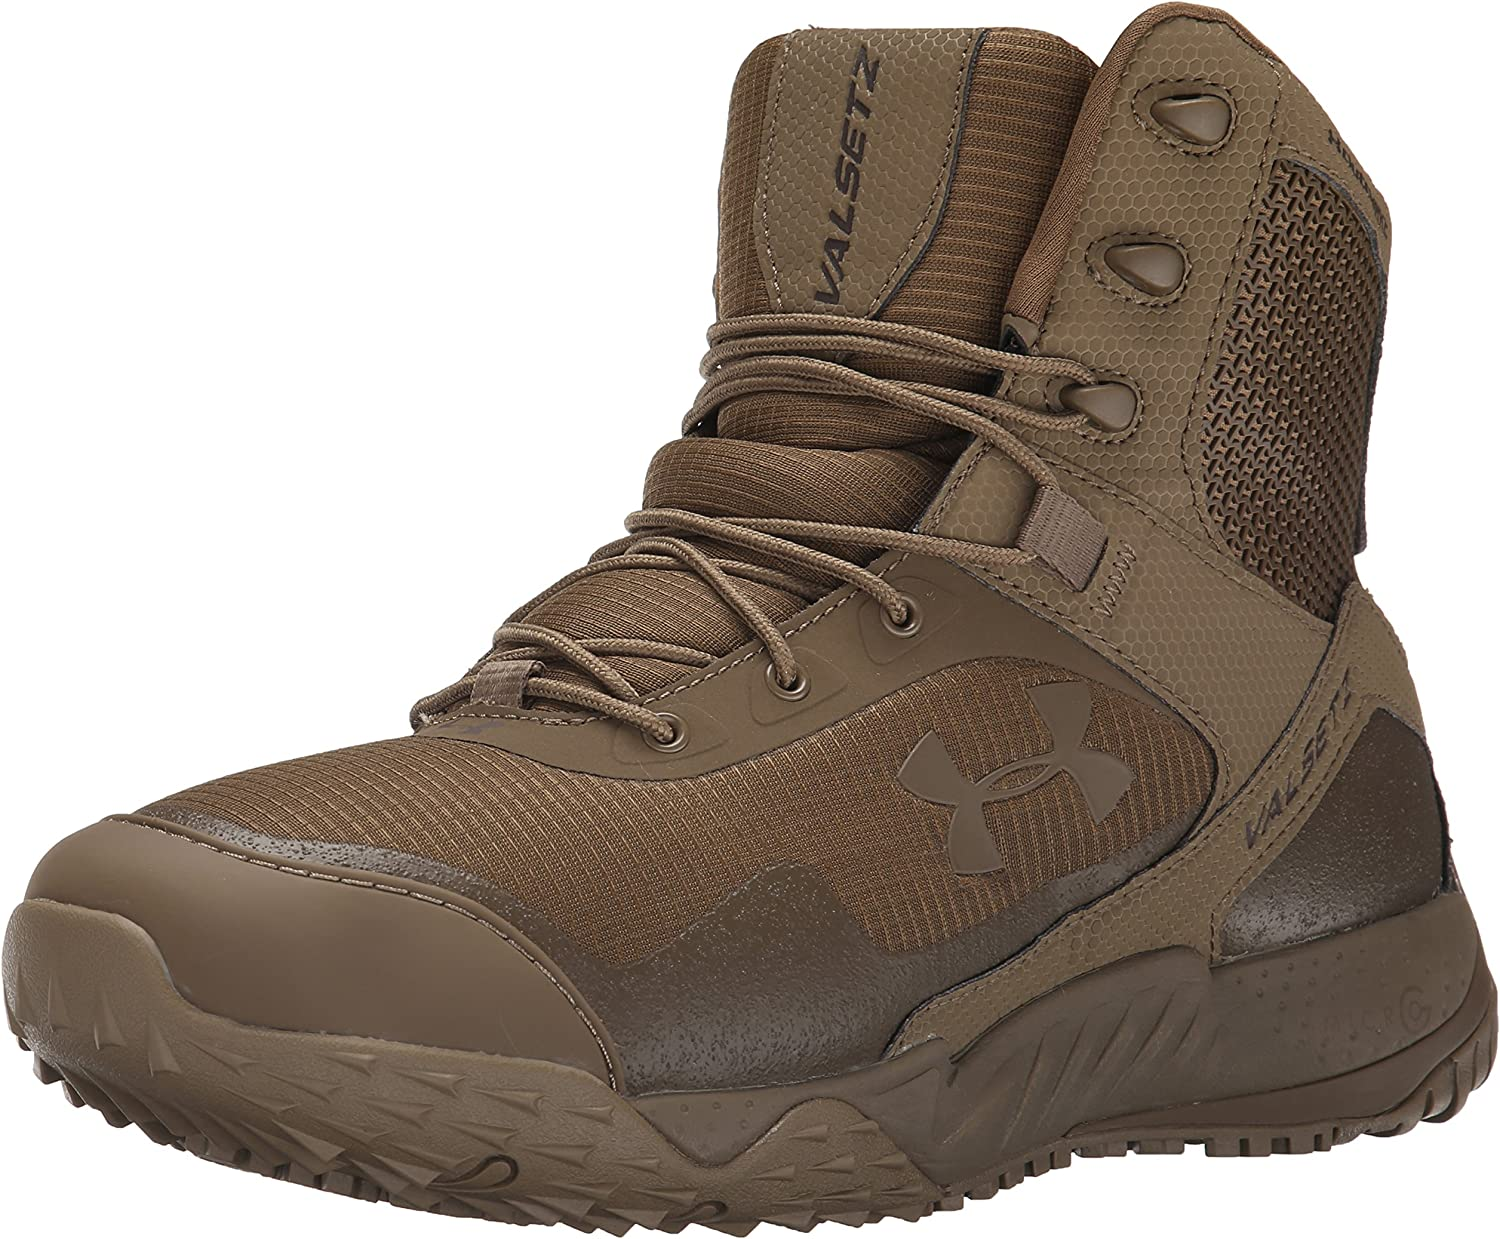 TALLA 41 EU. Under Armour Men 's Valsetz RTS Botas de Senderismo